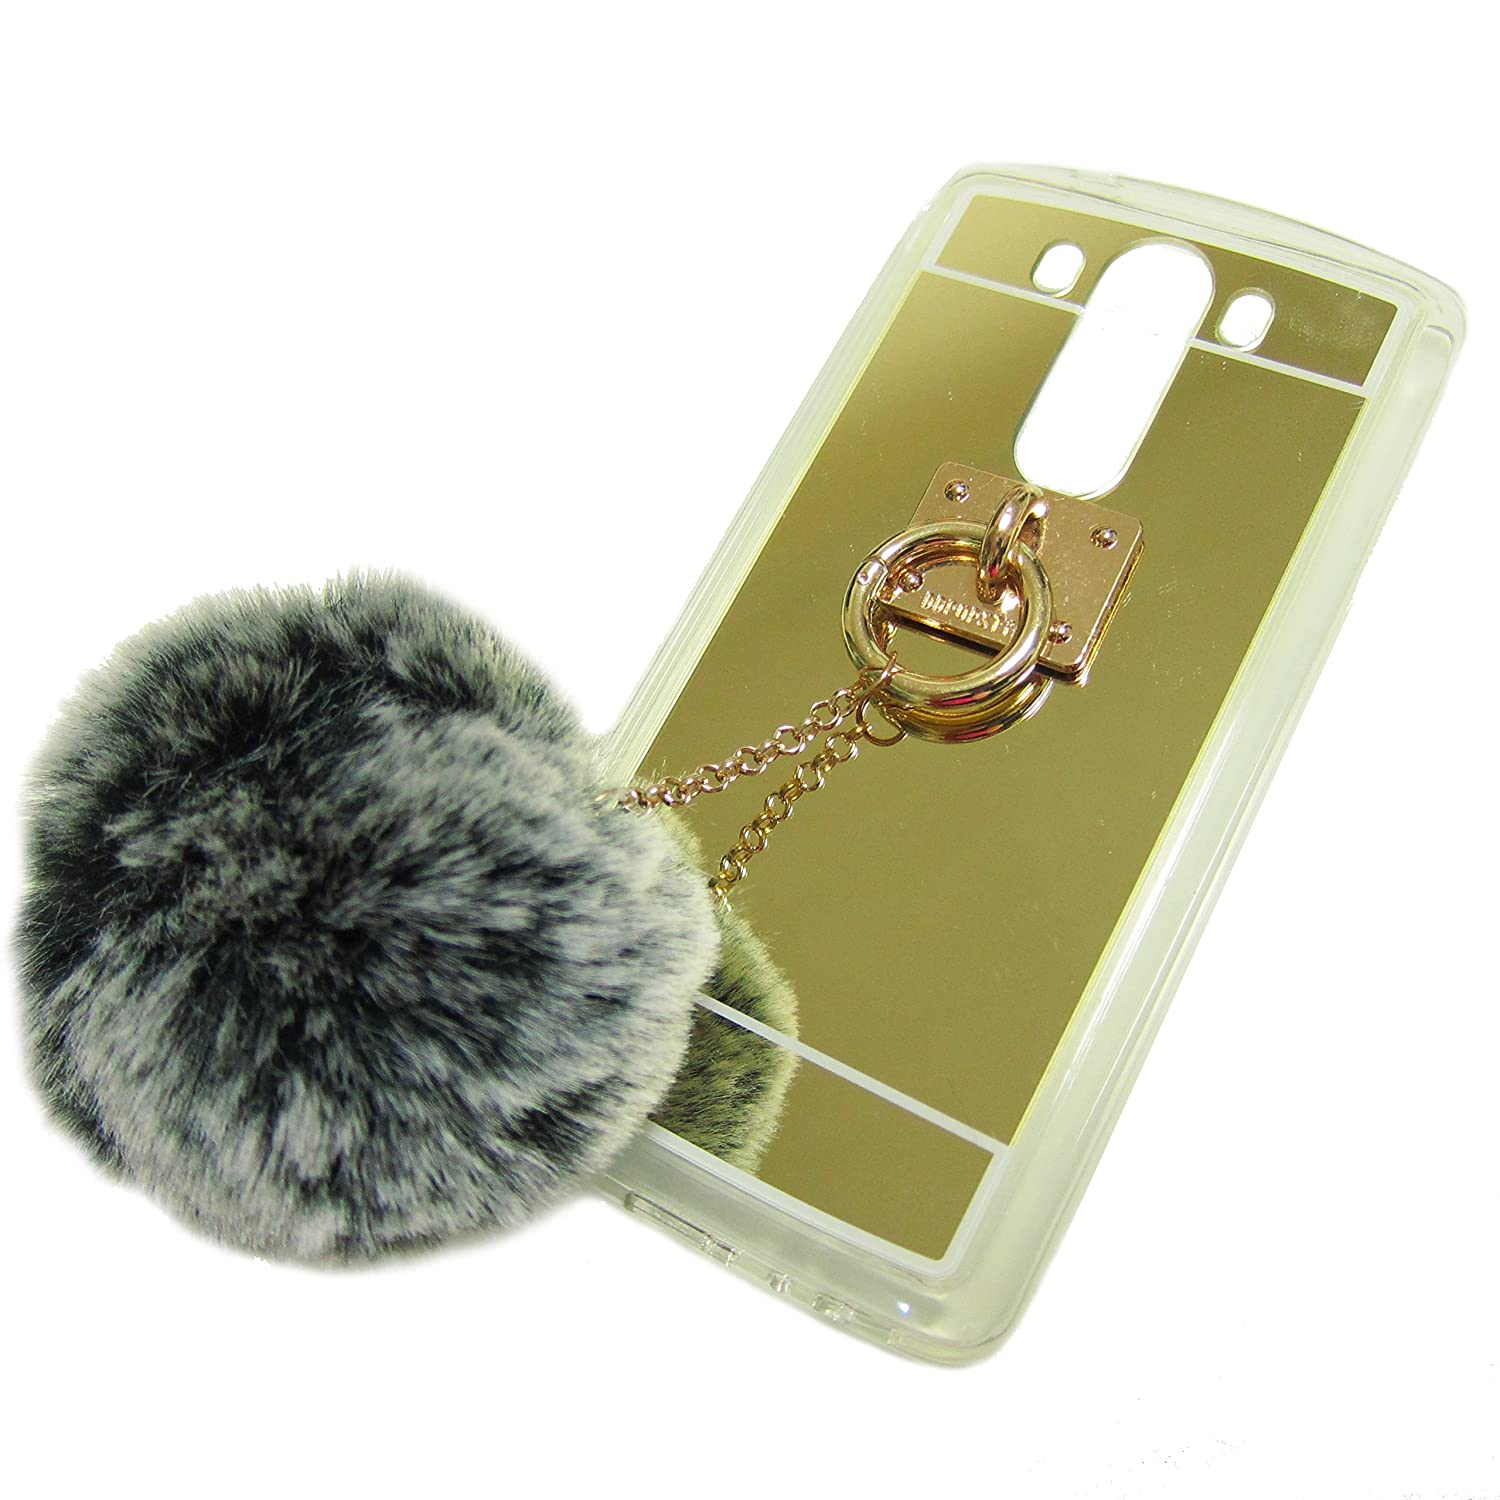 LG G5 Case, LU2000 Fluff Pompom Keychain Furry Cute Bunny Fur Ball [Mirror  Series] Soft Plastic TPU Phone Case Gold Back Cover for LG G5,H868 All